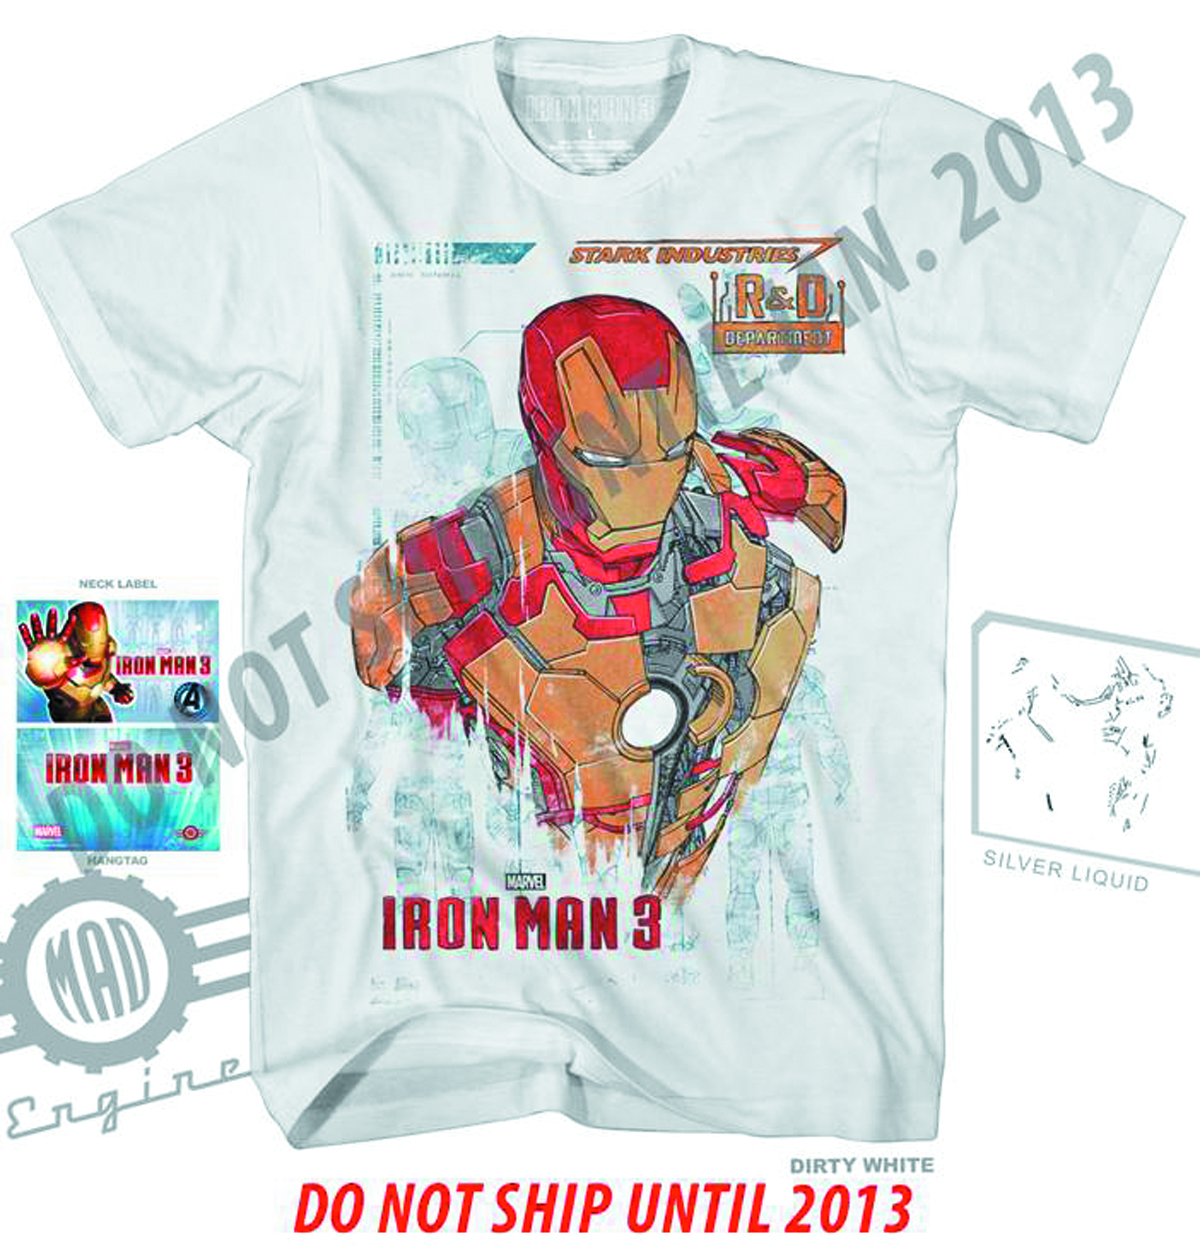 IRON MAN 3 R AND D-M DIRTY WHITE T/S LG